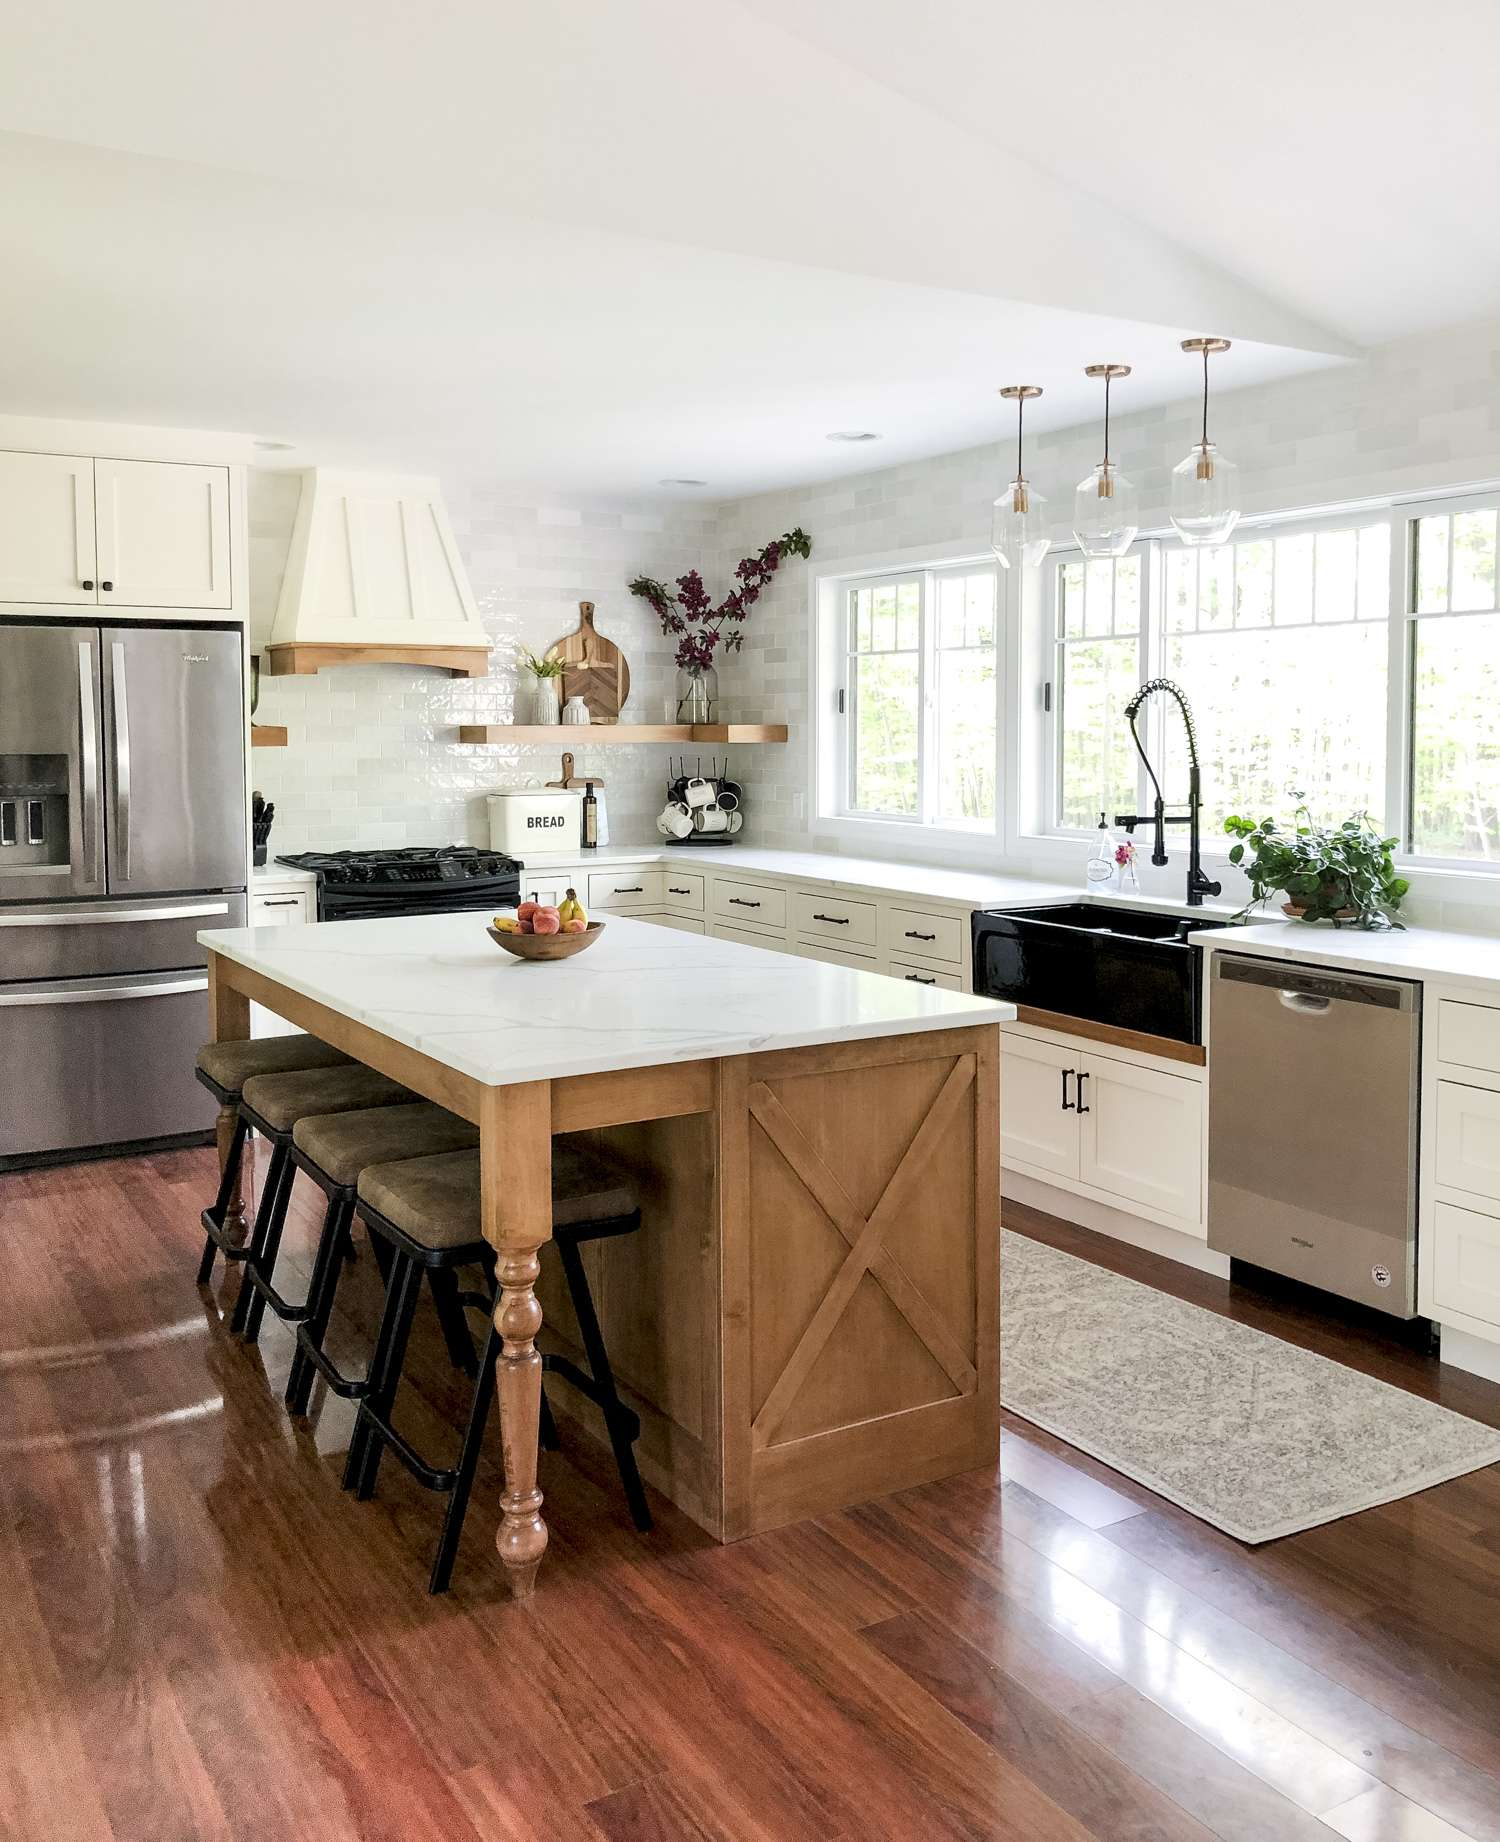 9 Vital Elements To Include In Your Farmhouse Kitchen: Designing A Modern Farmhouse Kitchen With A Black